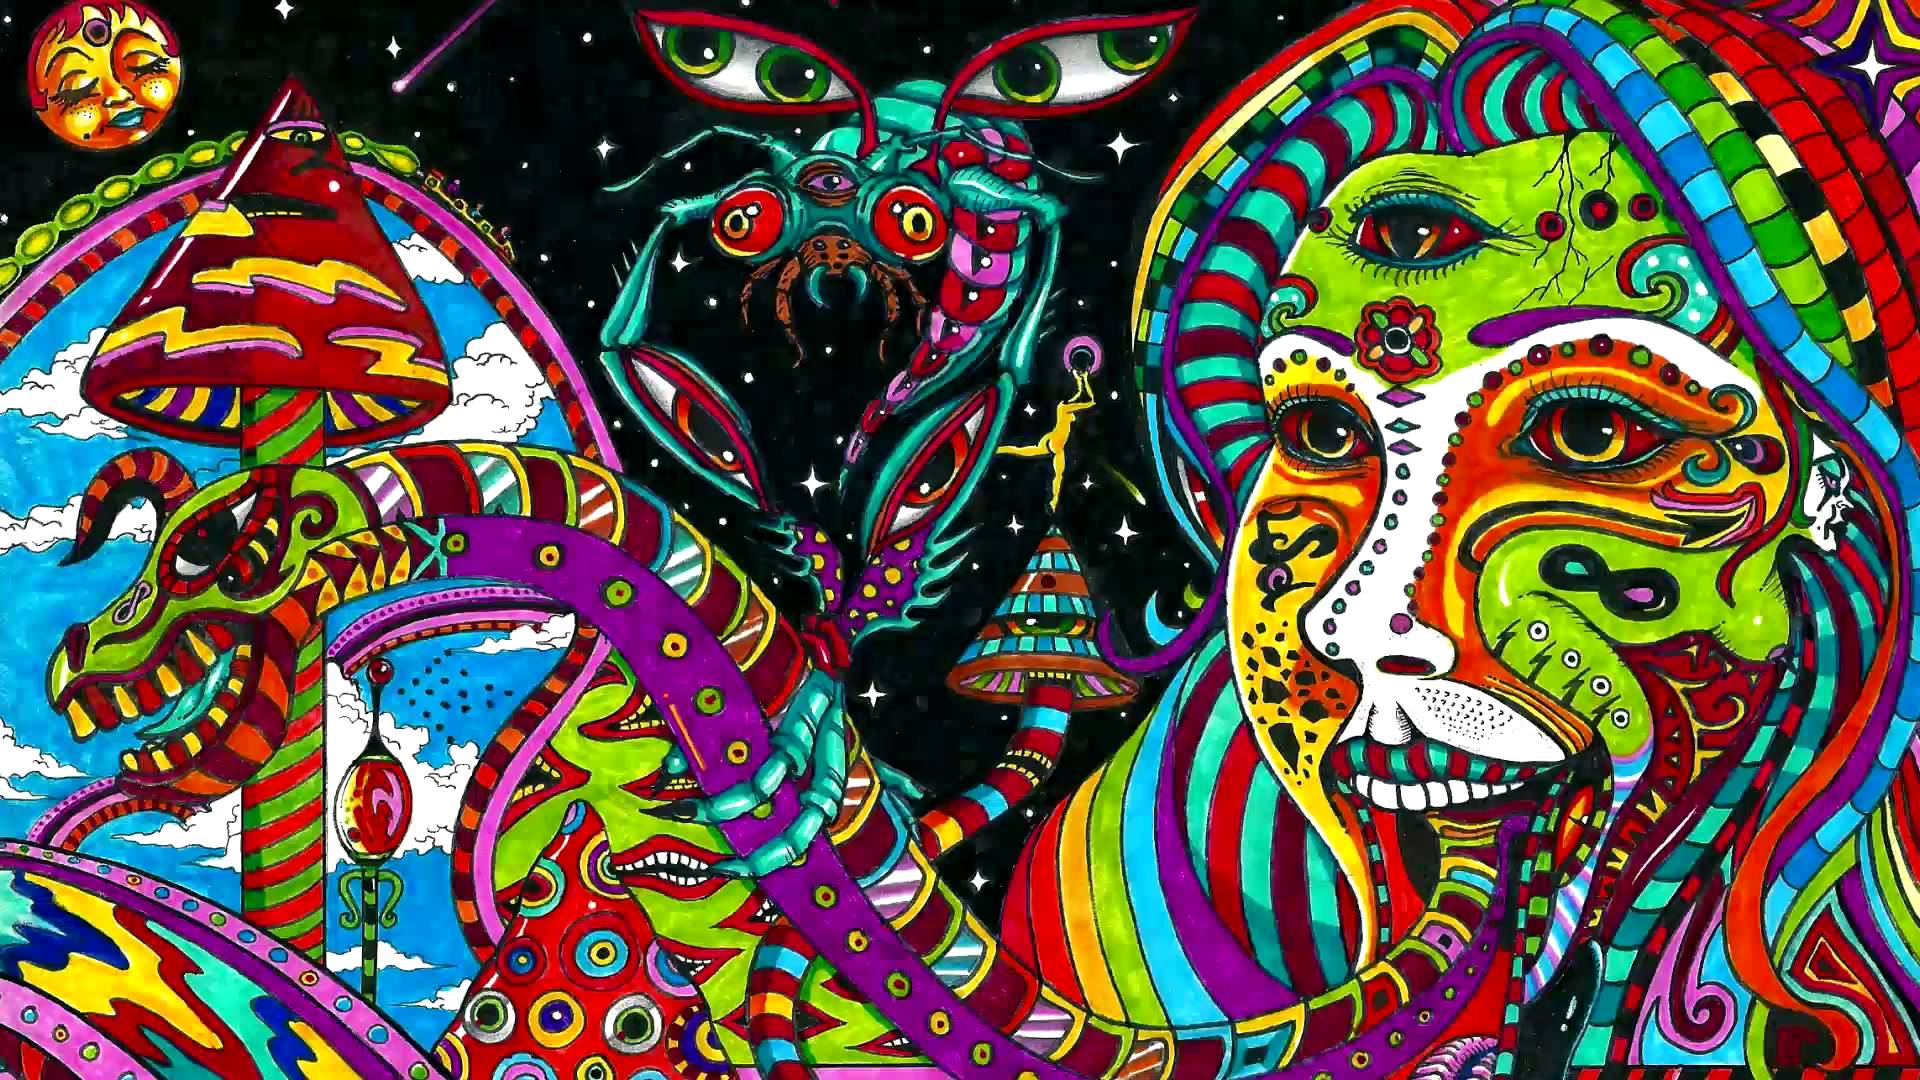 Lord Of Light On Lsd also Watch also Space Stars Pla s together with Black Wallpapers furthermore Trippy Psychedelic Animated Gif KvxYvvN9qi2hG. on trippy art posters